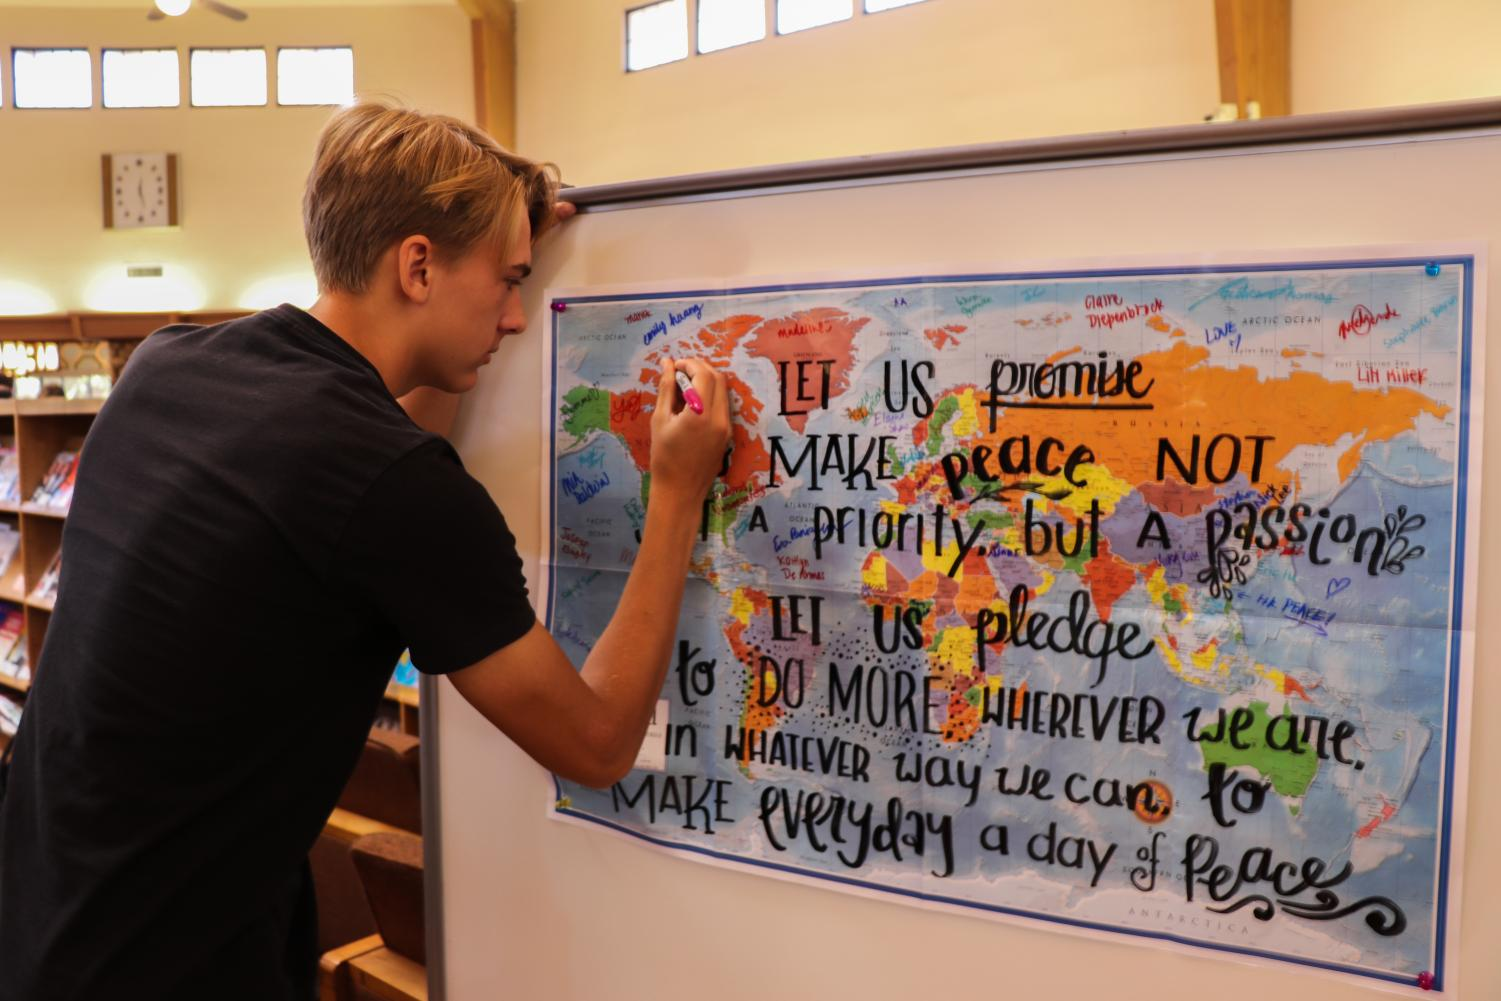 Ethan Caldecott ('21) signs his name on the world map, taking the peace pledge.